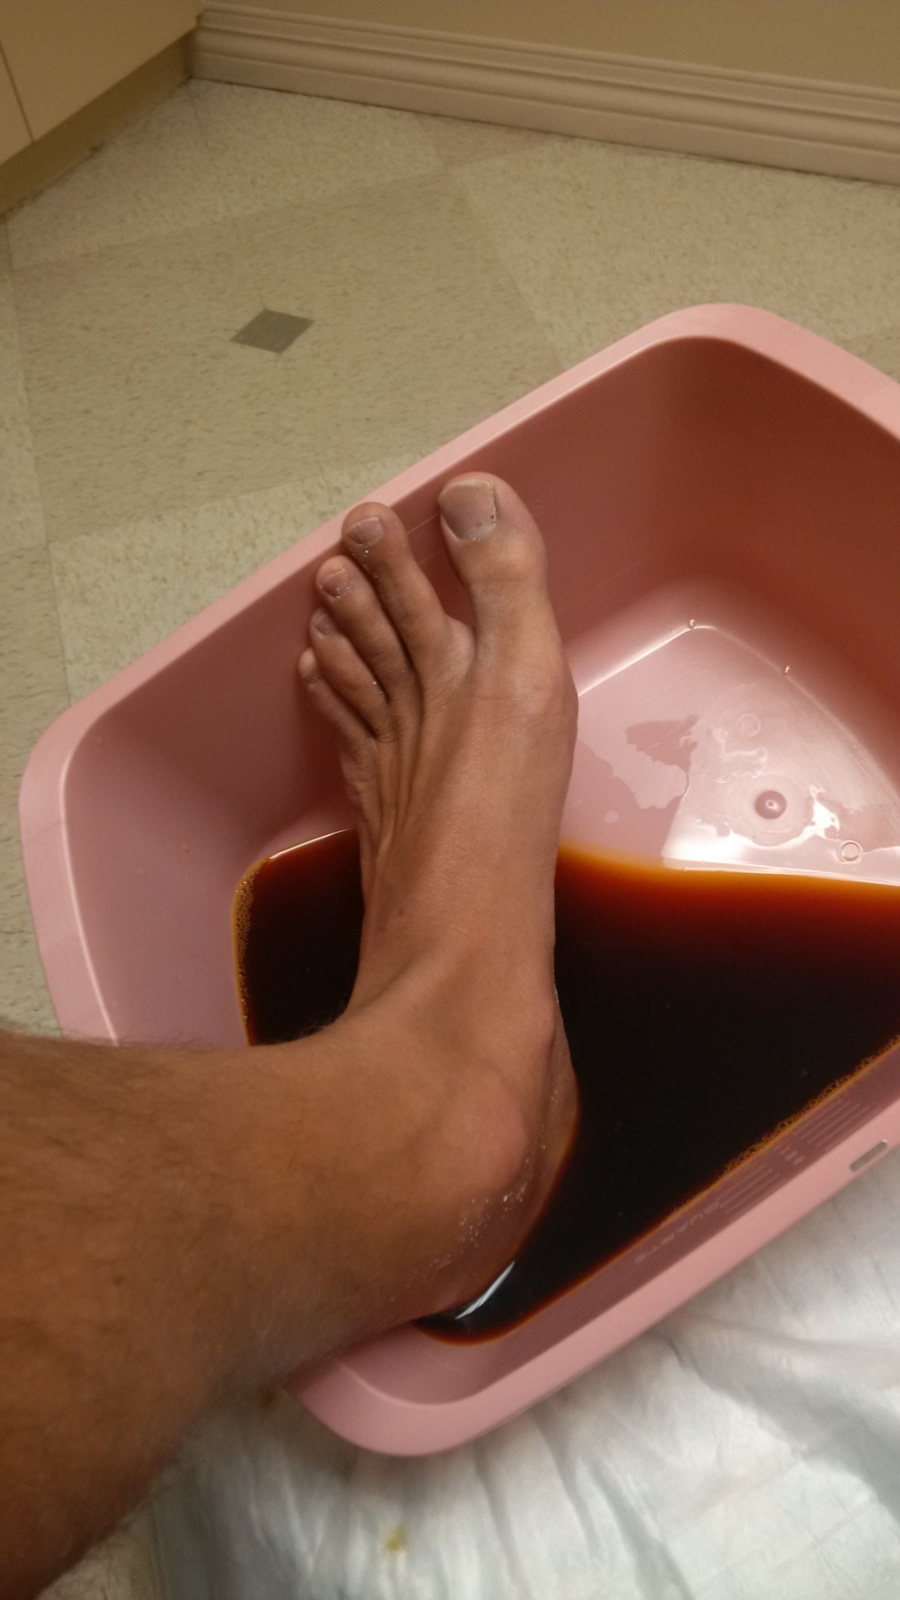 My Foot in Iodine @ the ER